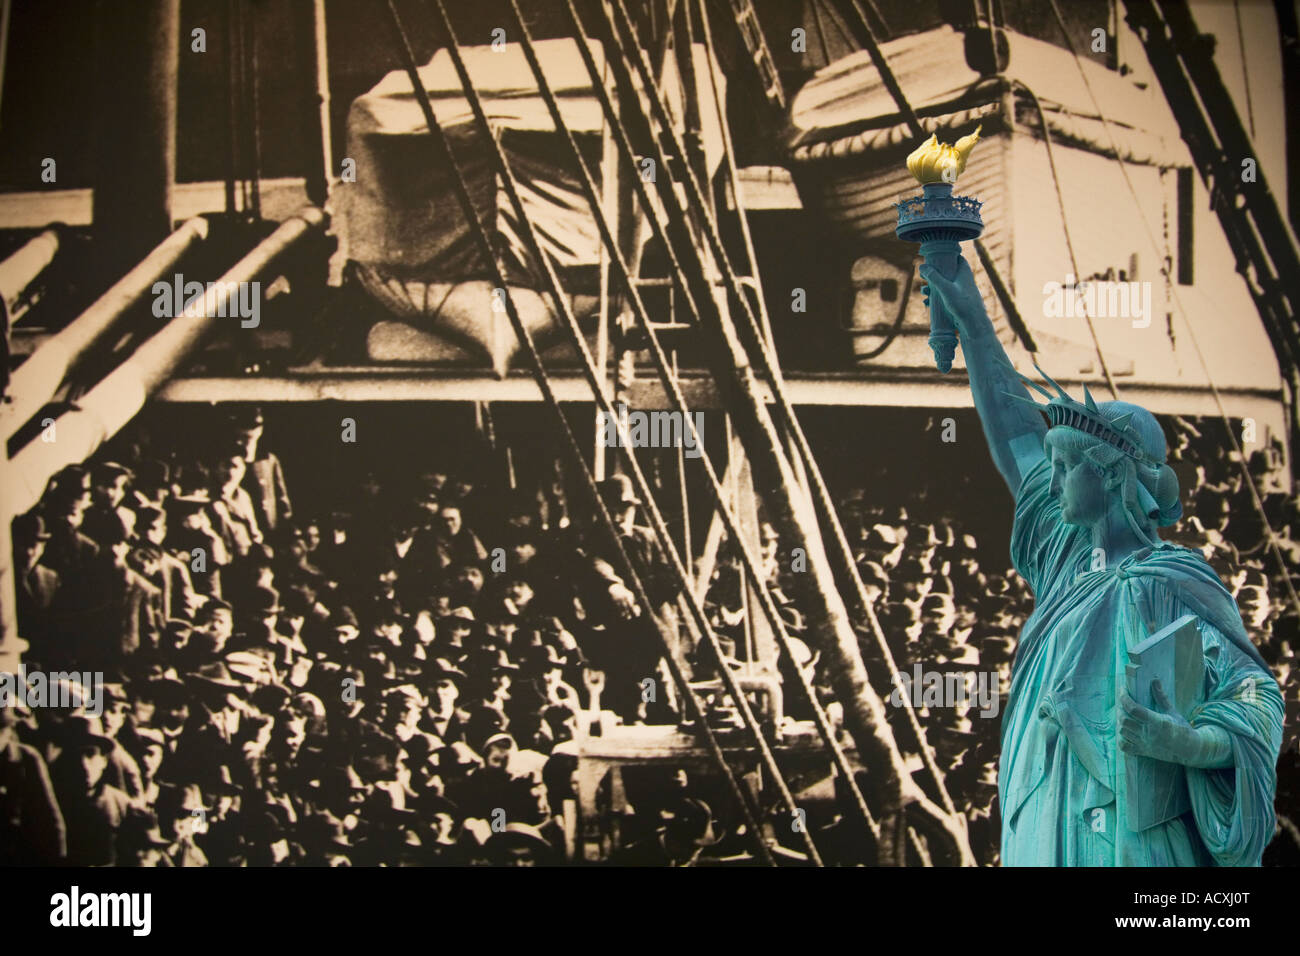 'Statue of Liberty' immigration immigrants composite Lady Liberty welcomes immigrants from Europe to New - Stock Image